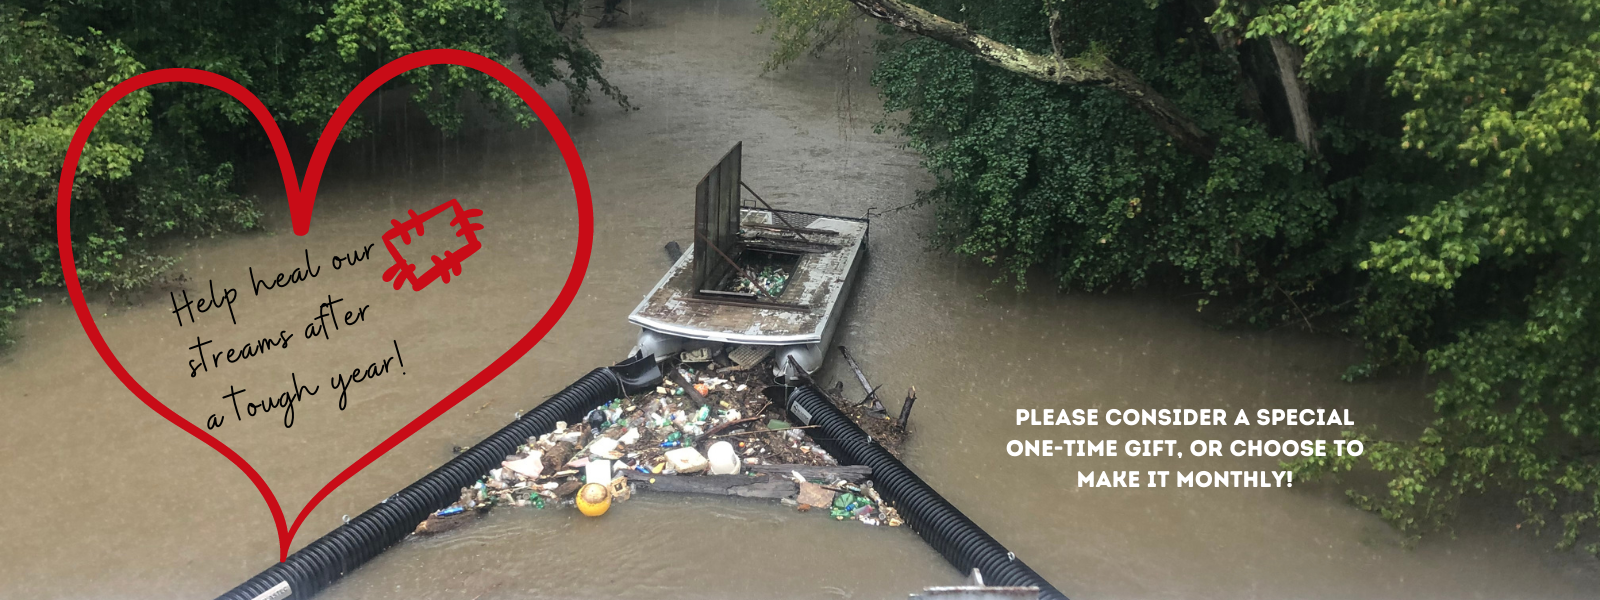 Our Urban Rivers Need Our Help! image